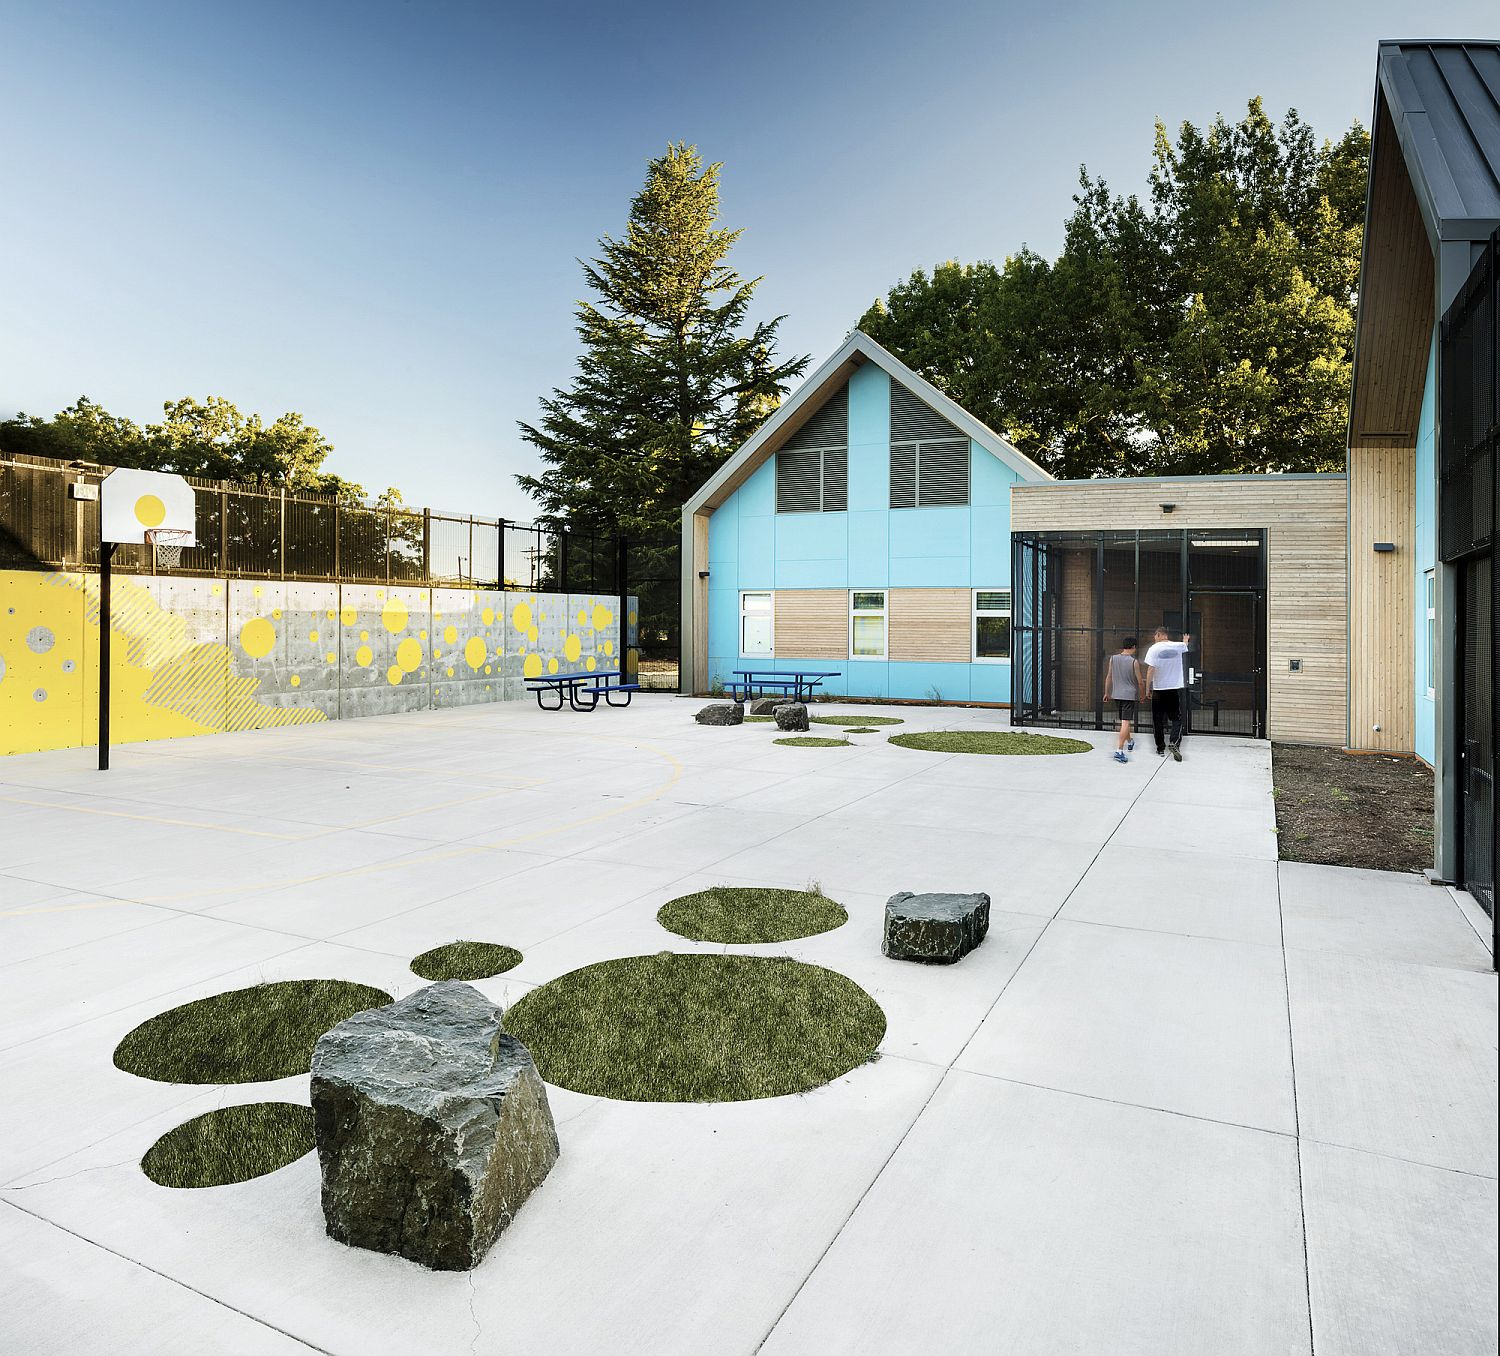 Secure playground and outdoor zone at the facility